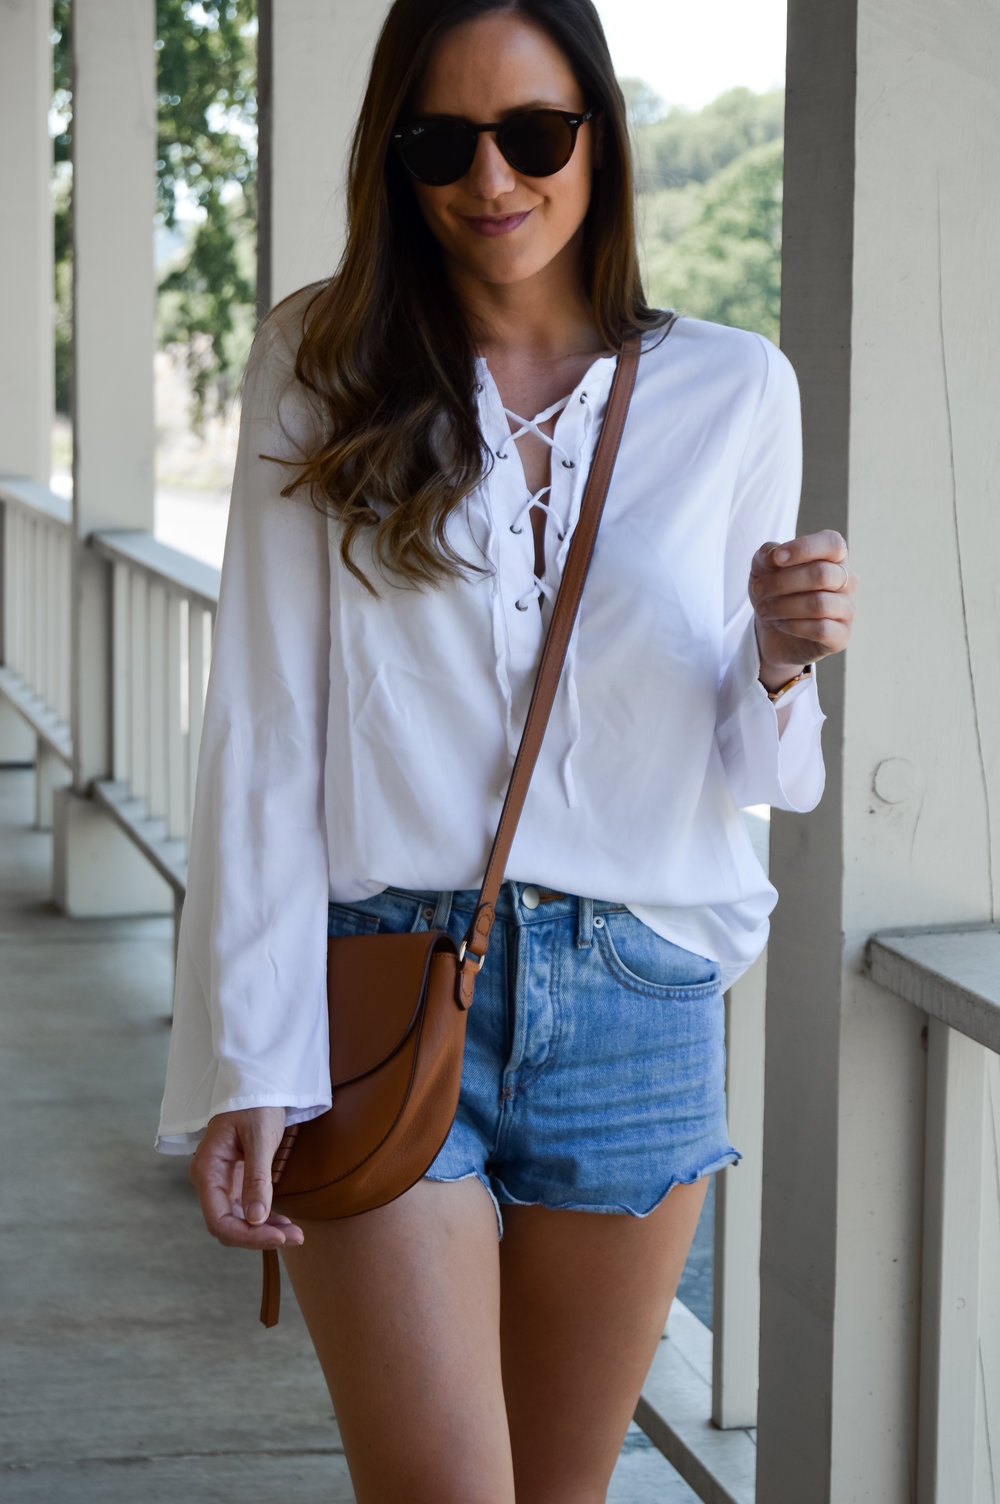 cognac crossbody and white summer outfit